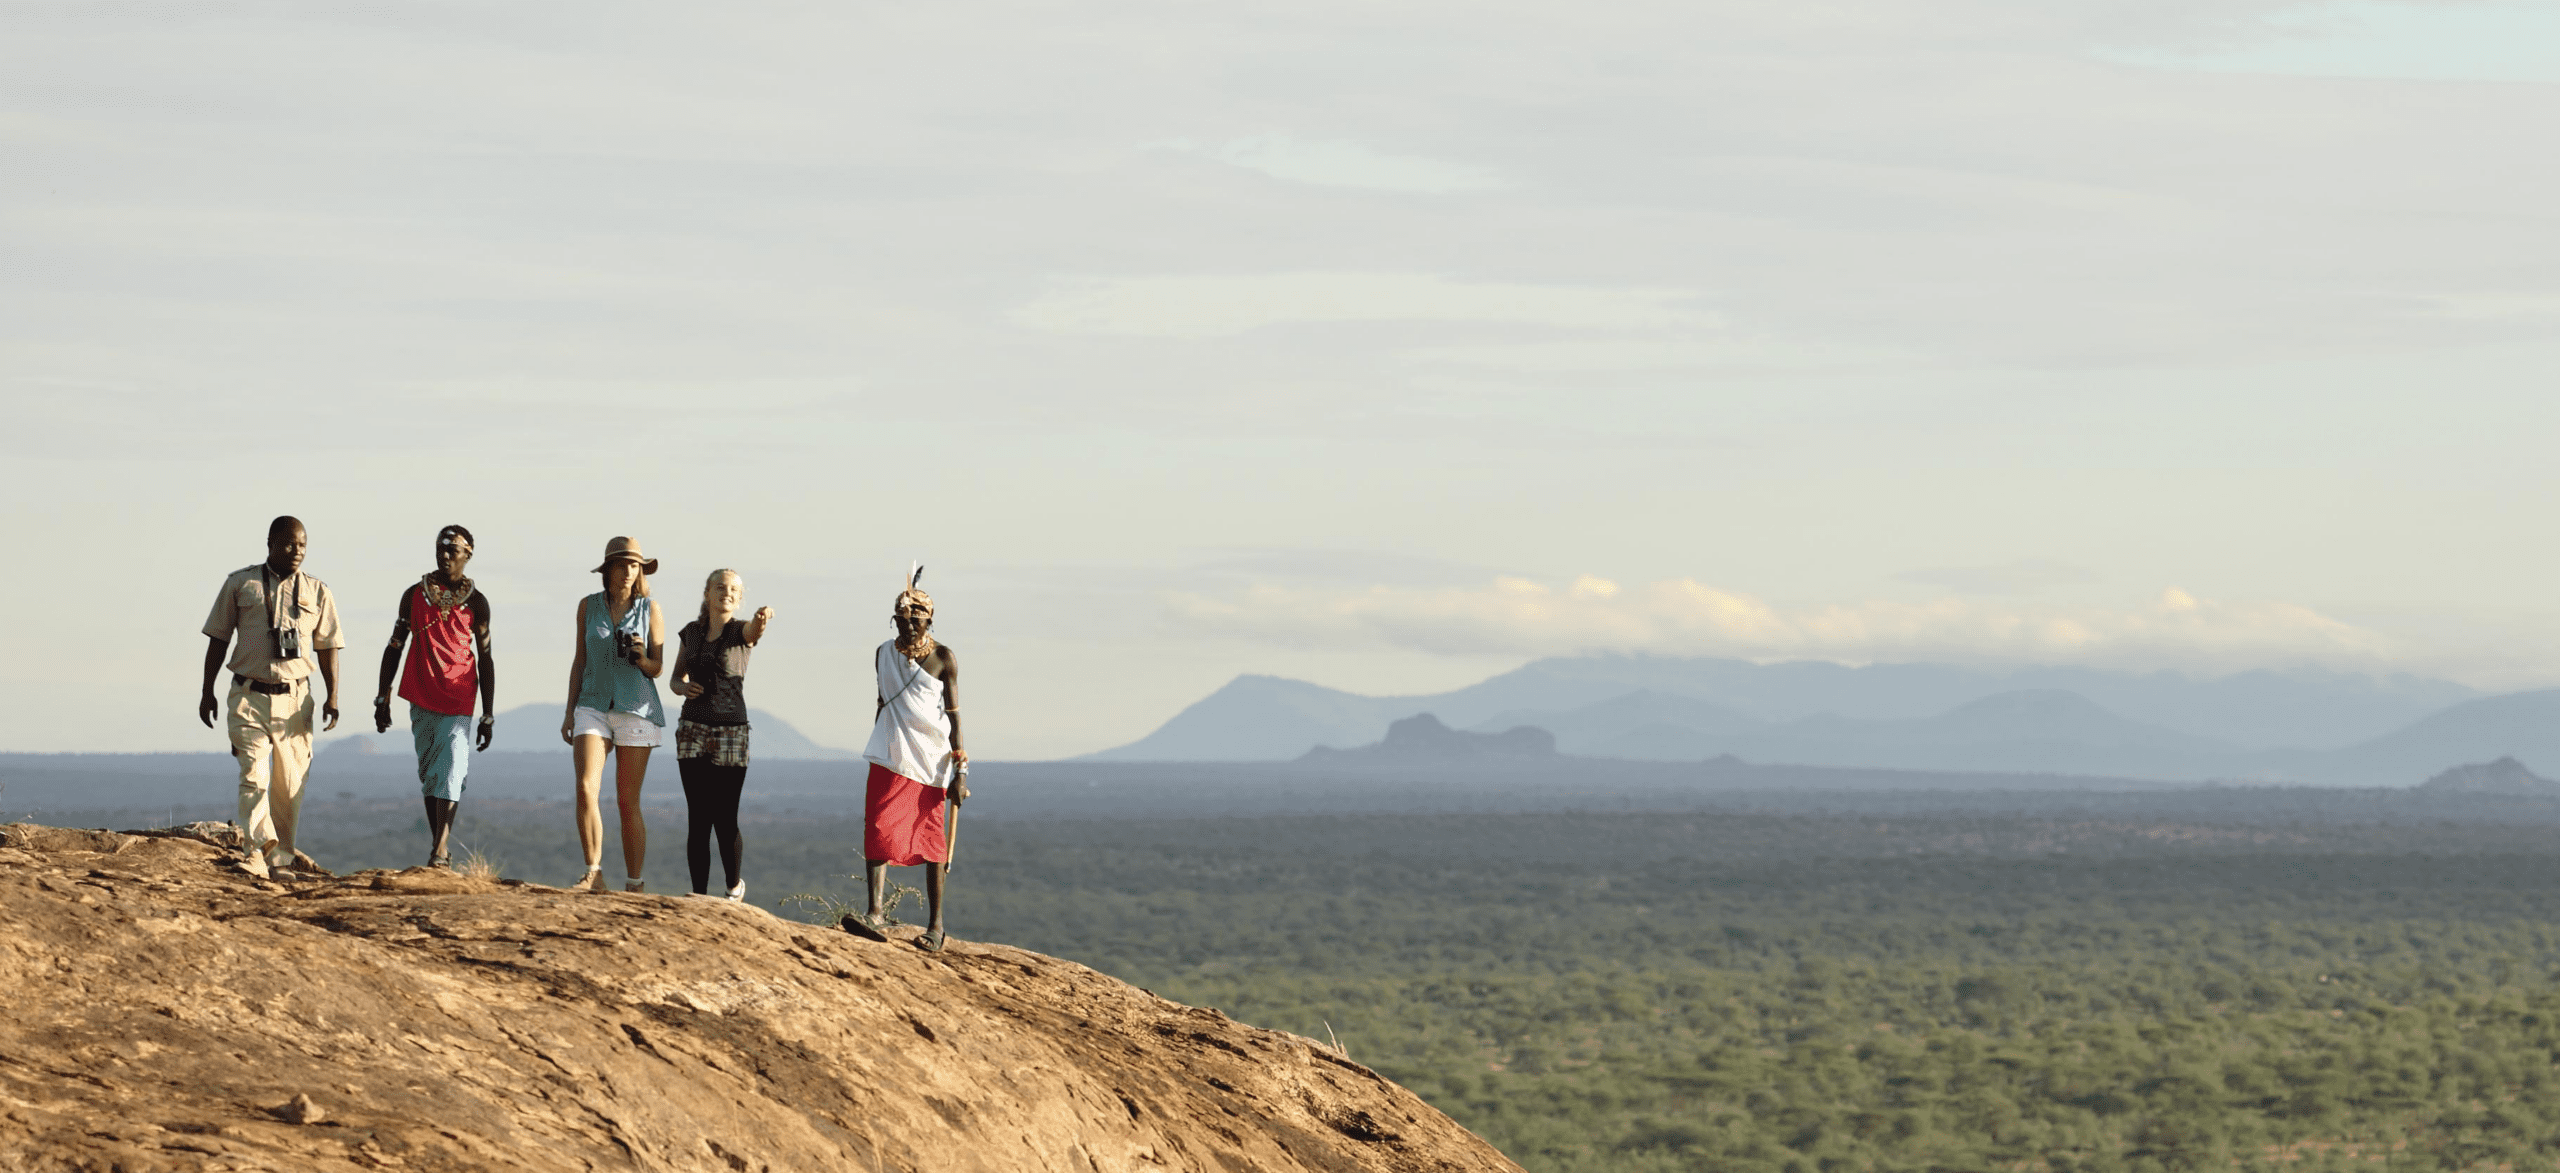 4 tourist and their guide wearing traditional samburu garbs are hiking a mountain in Samburu